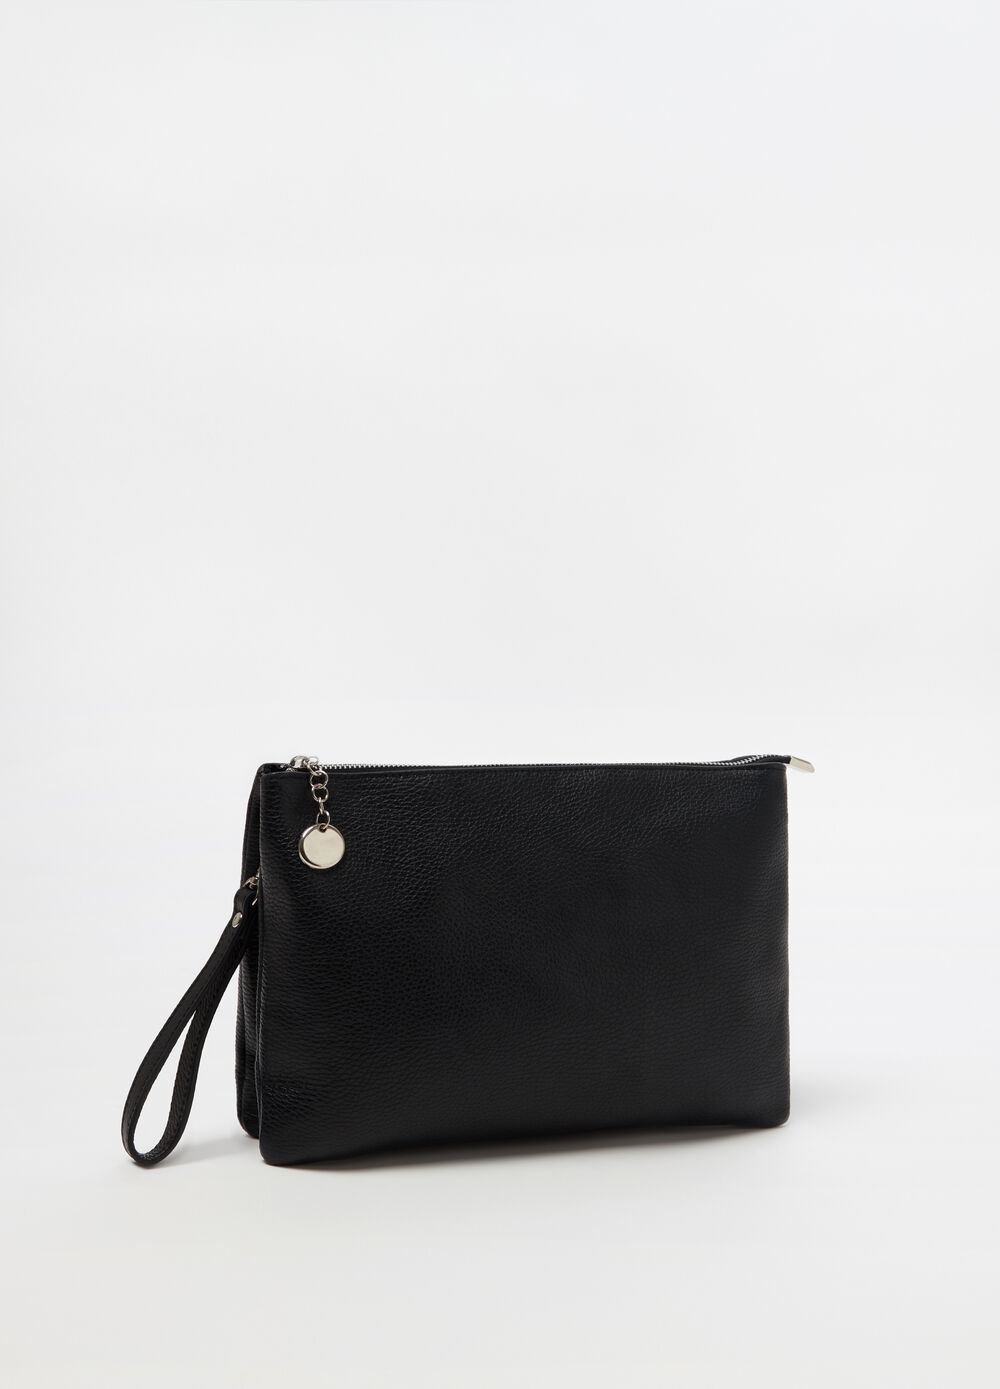 Leather clutch bag with detachable shoulder strap